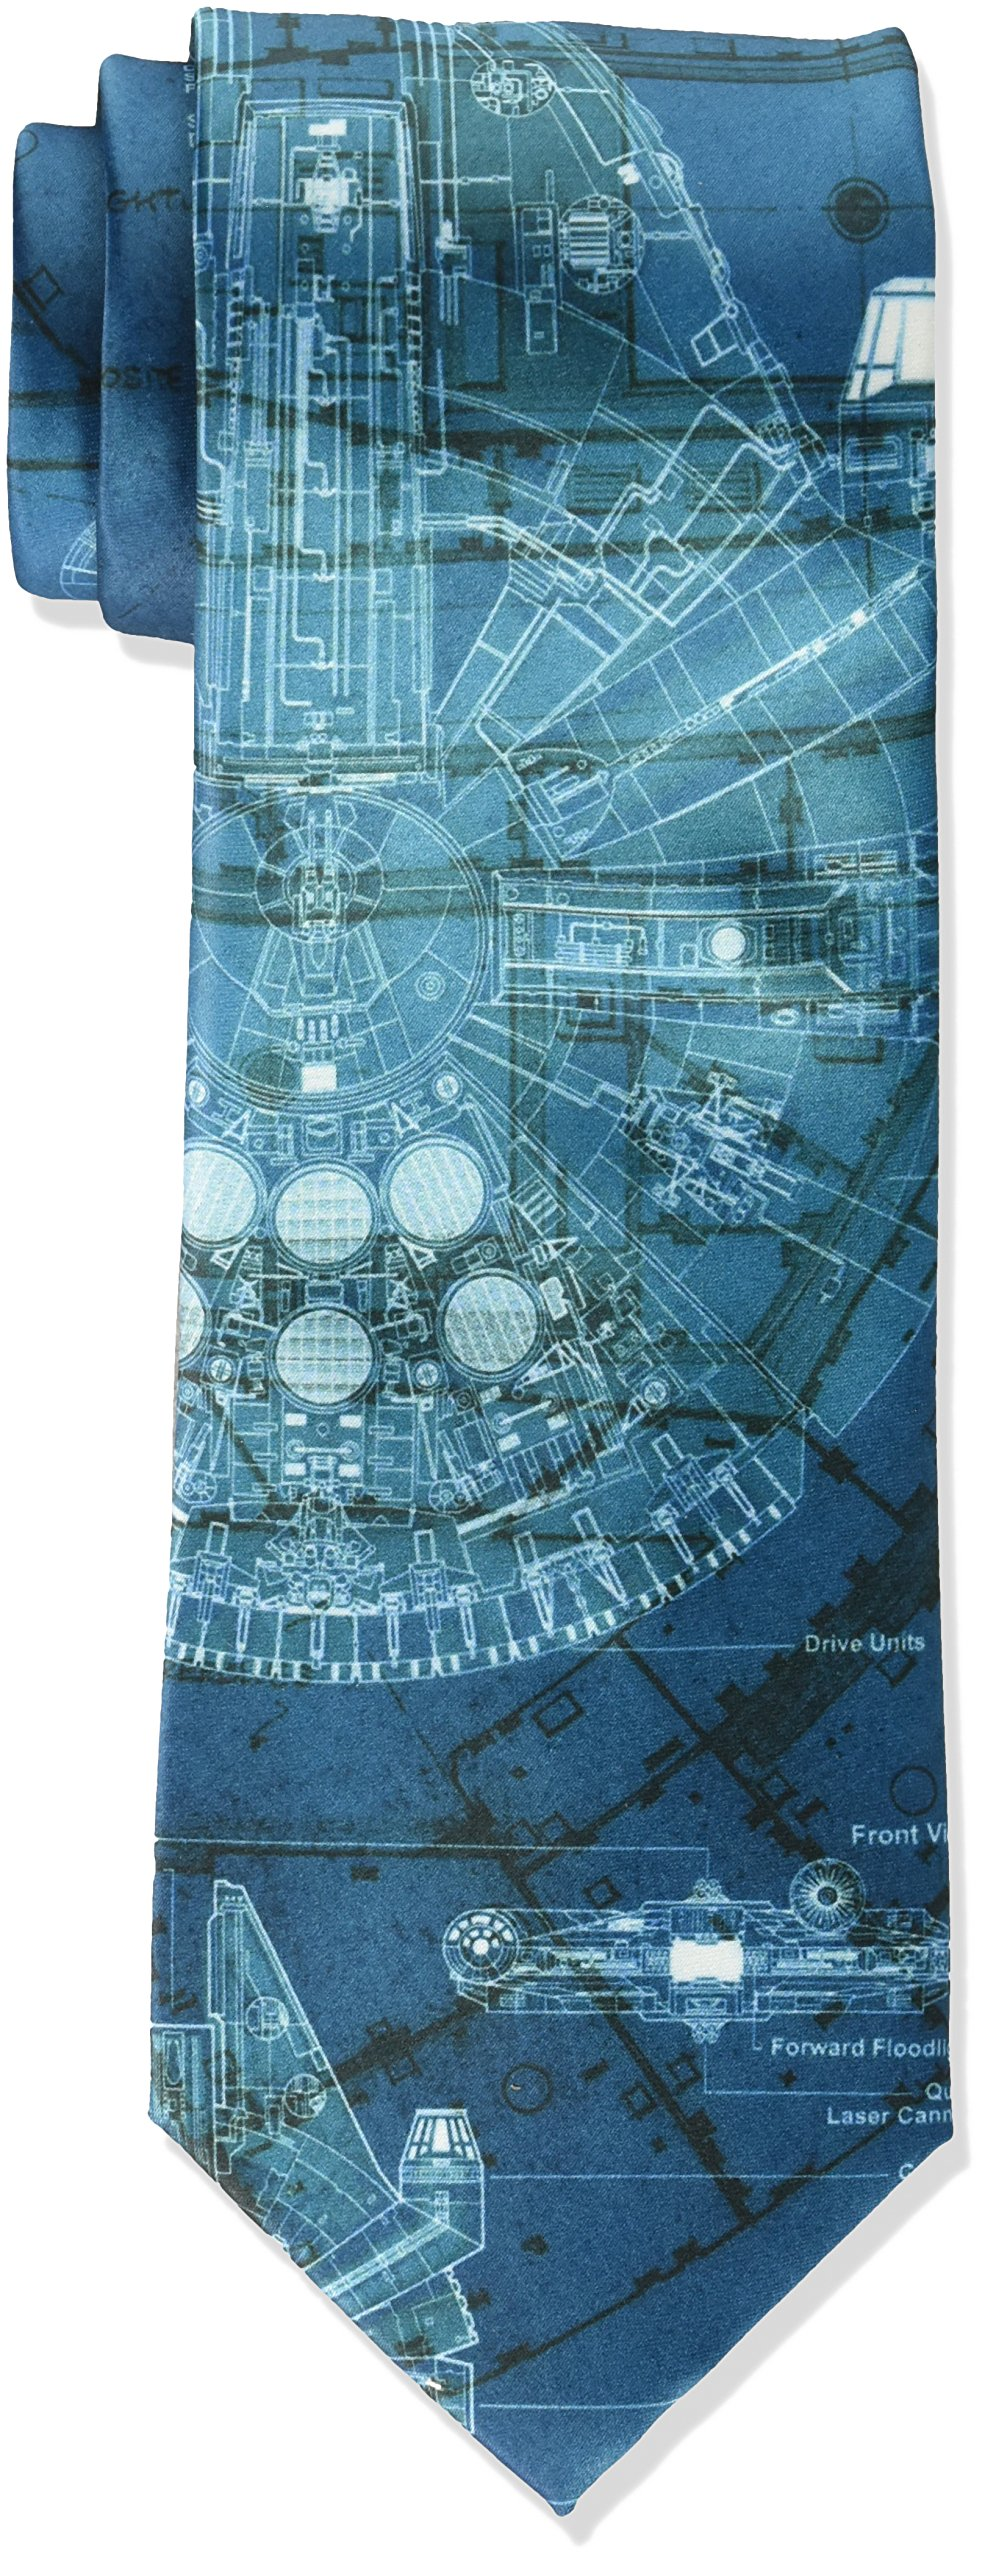 Star Wars Men's Millennium Falcon Tie, Teal, Regular